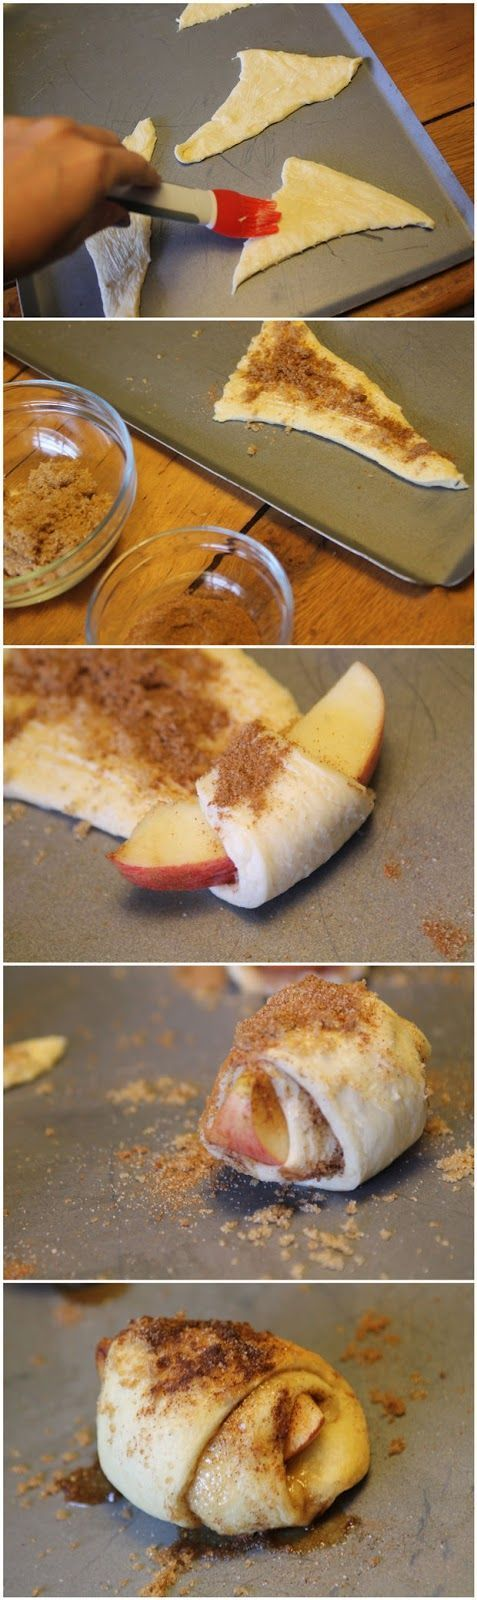 Bite Size Apple Pies would be another fun mini dessert--perfect for entertaining in small spaces.